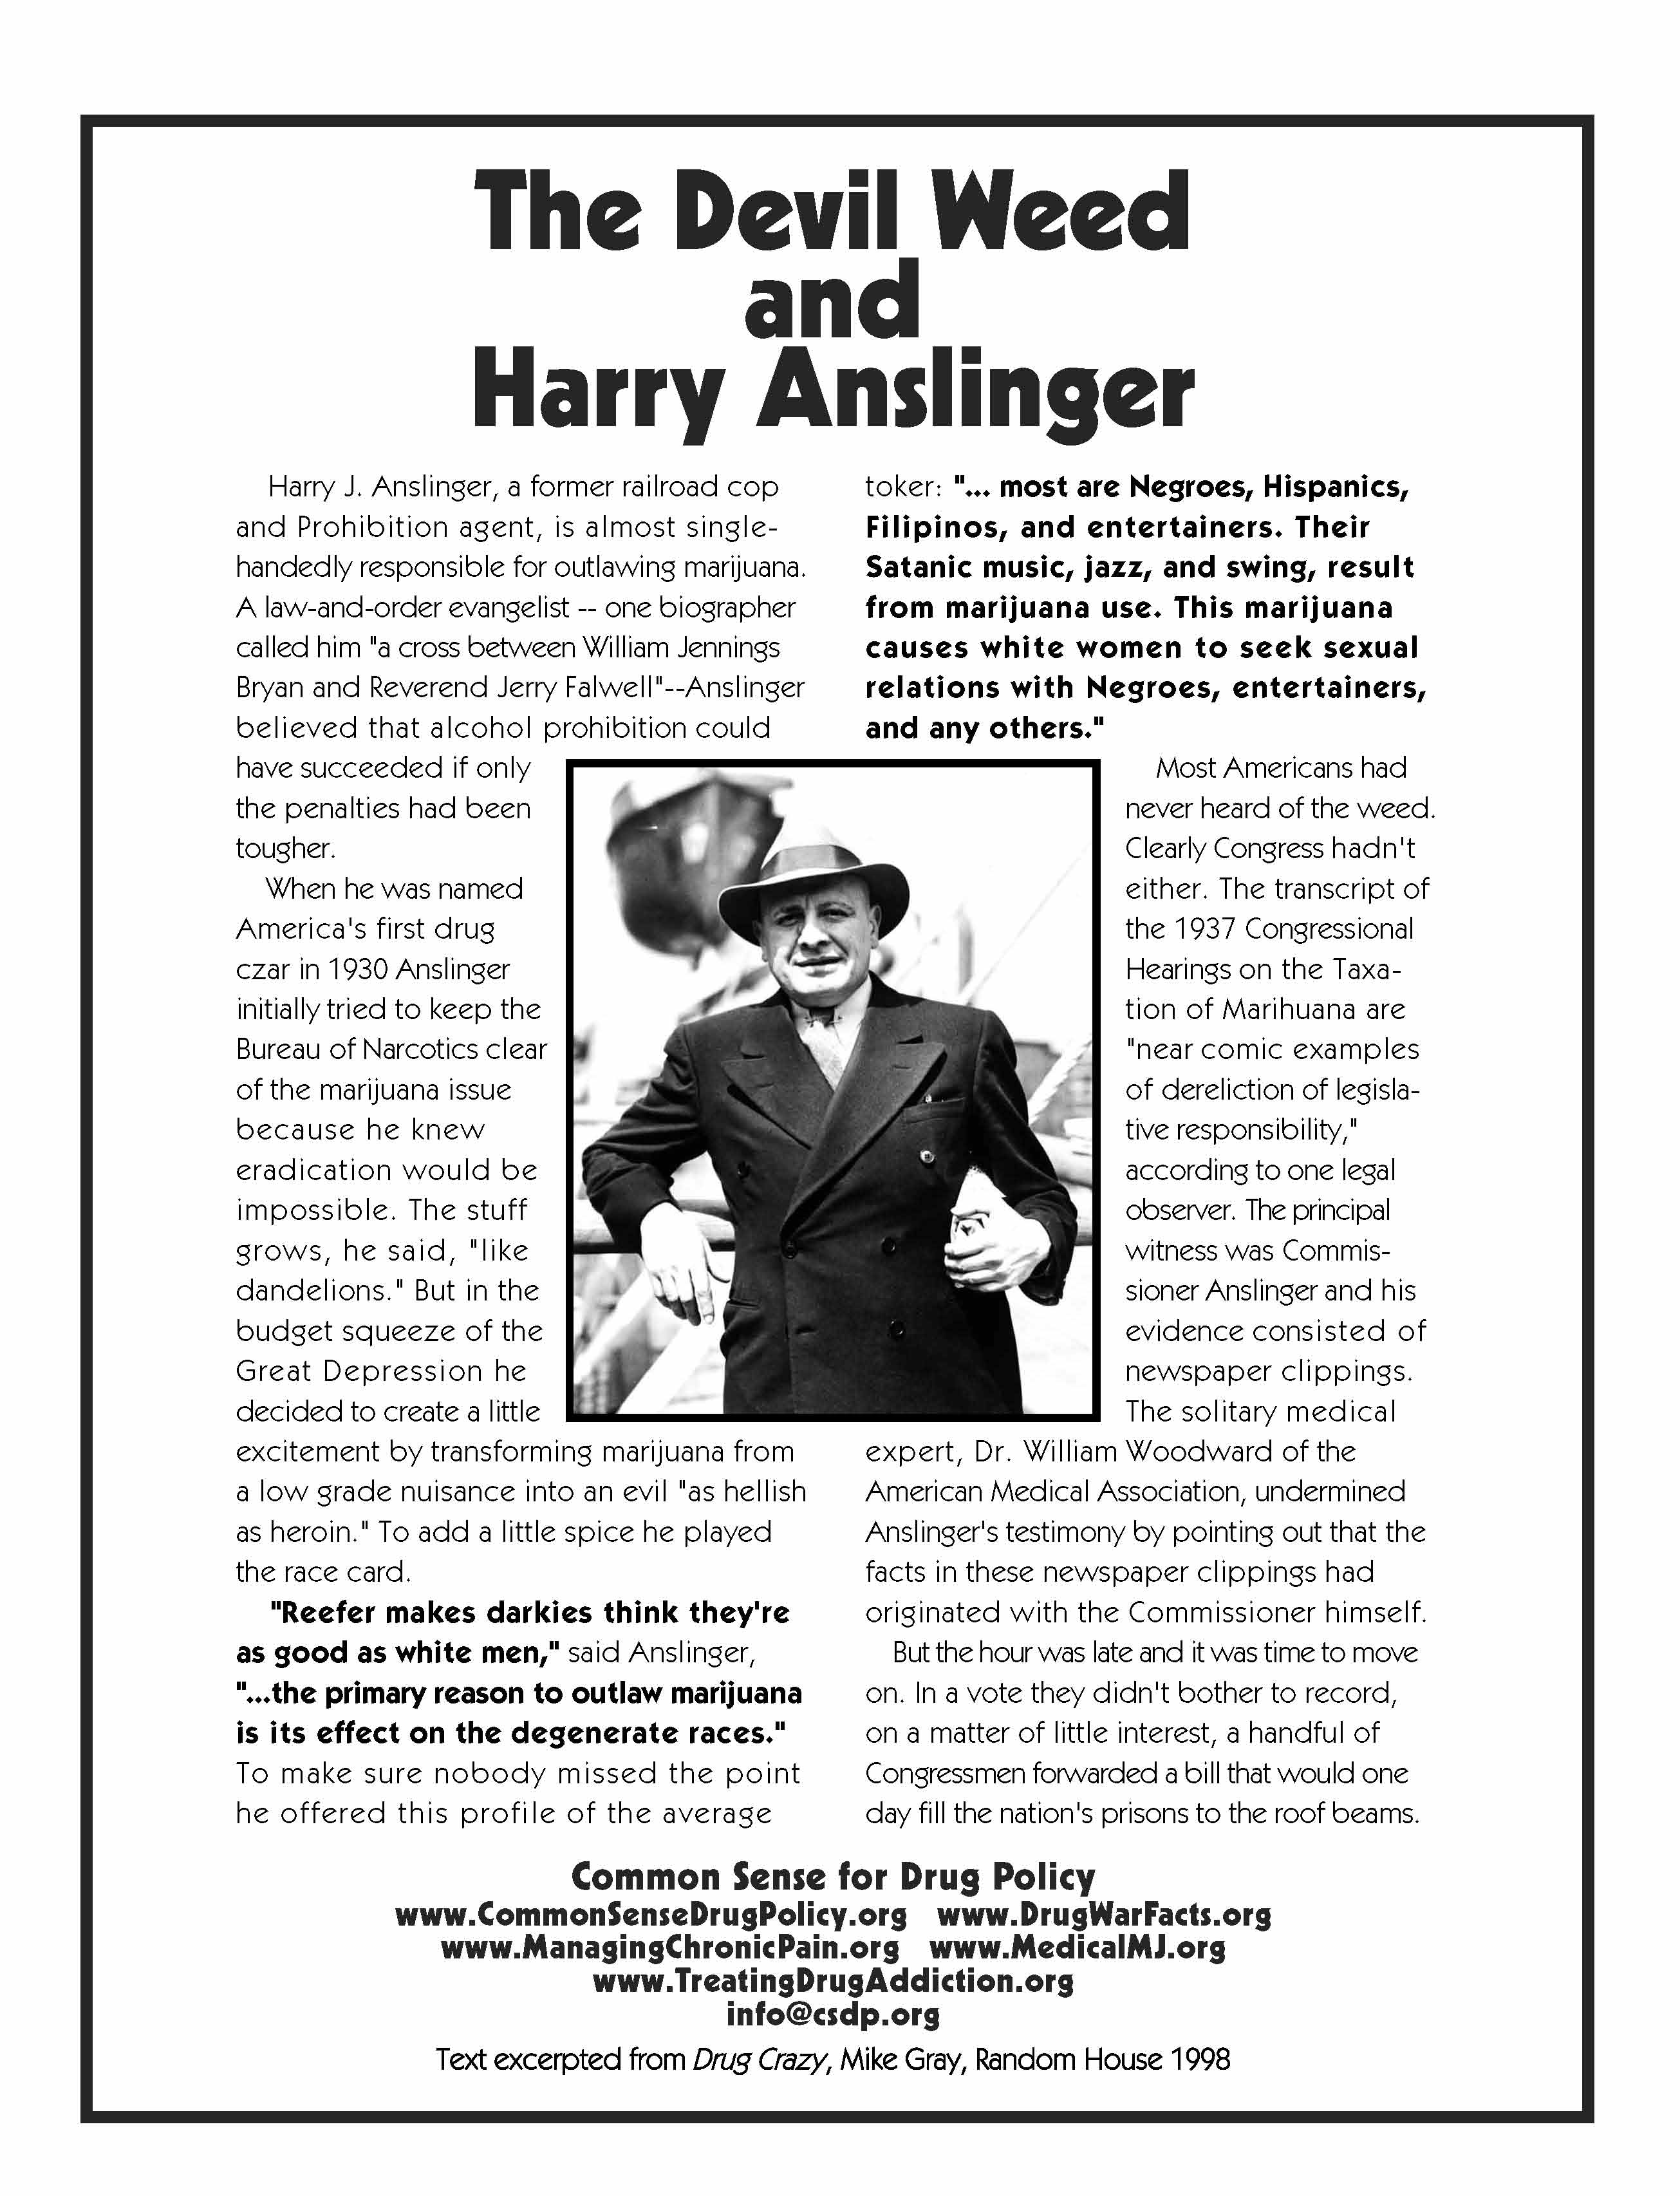 The Devil Weed and Harry J Anslinger